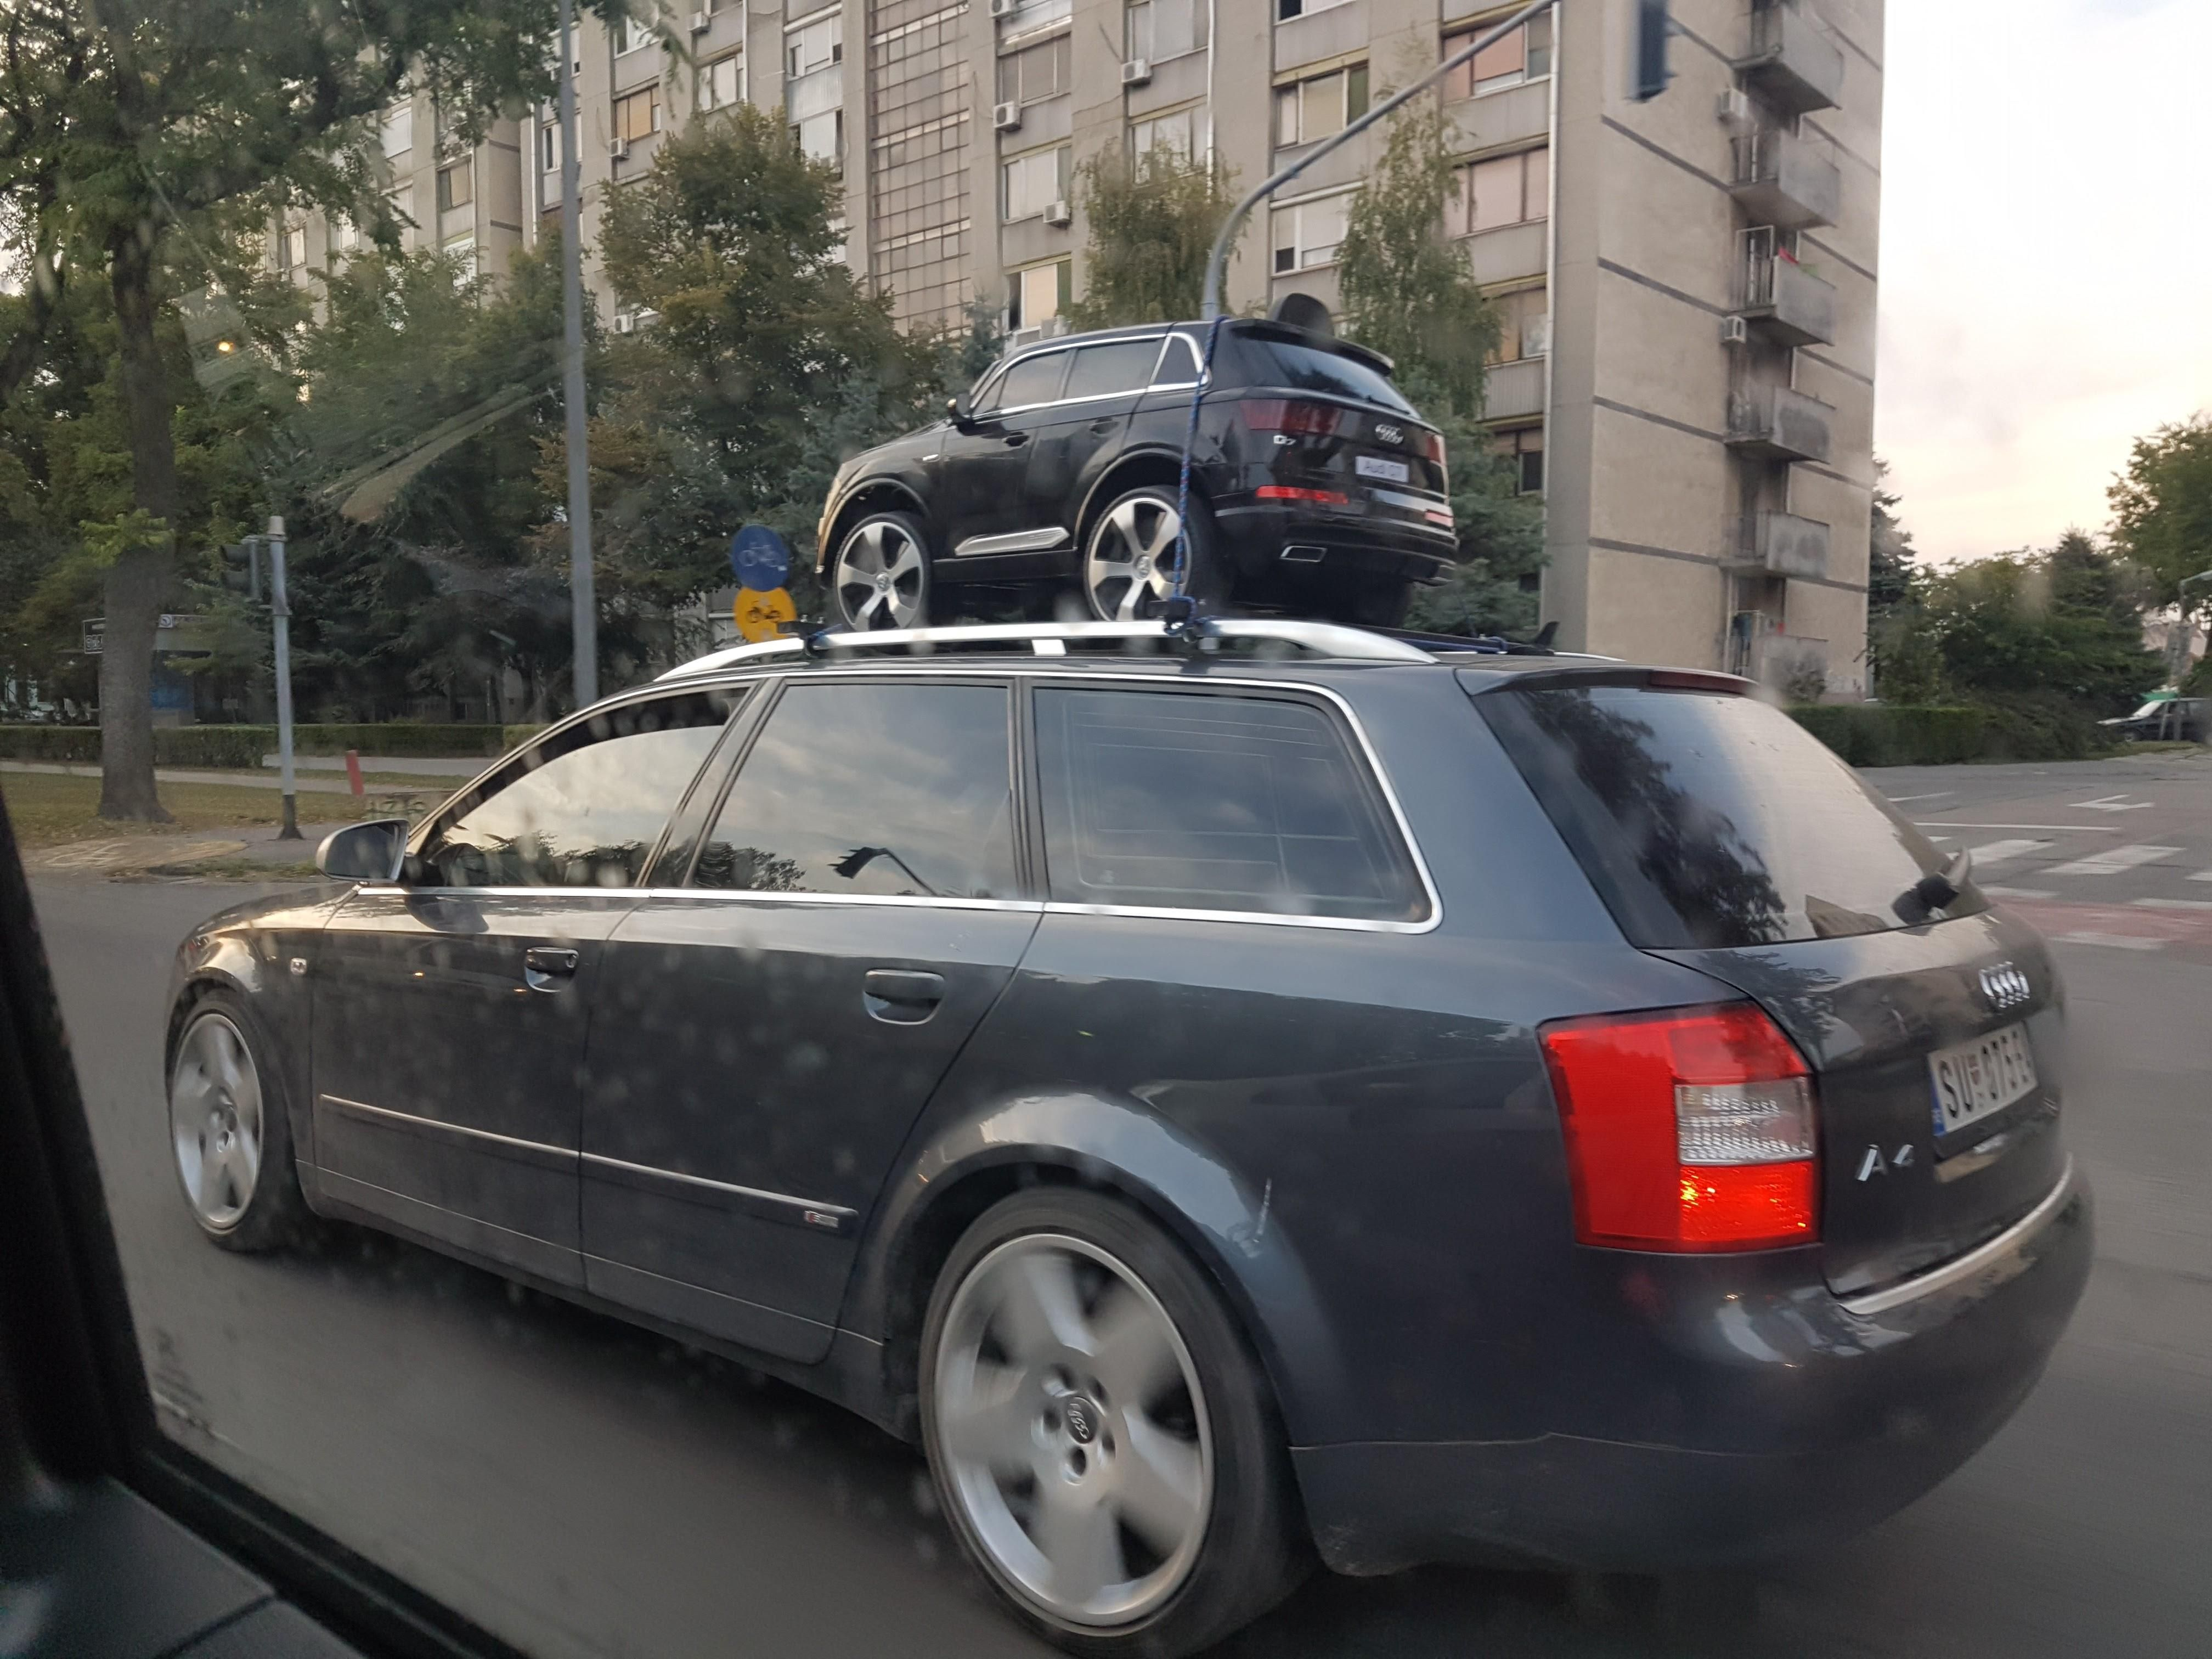 Very rare moment of a mother Audi taking its cub on its first journey